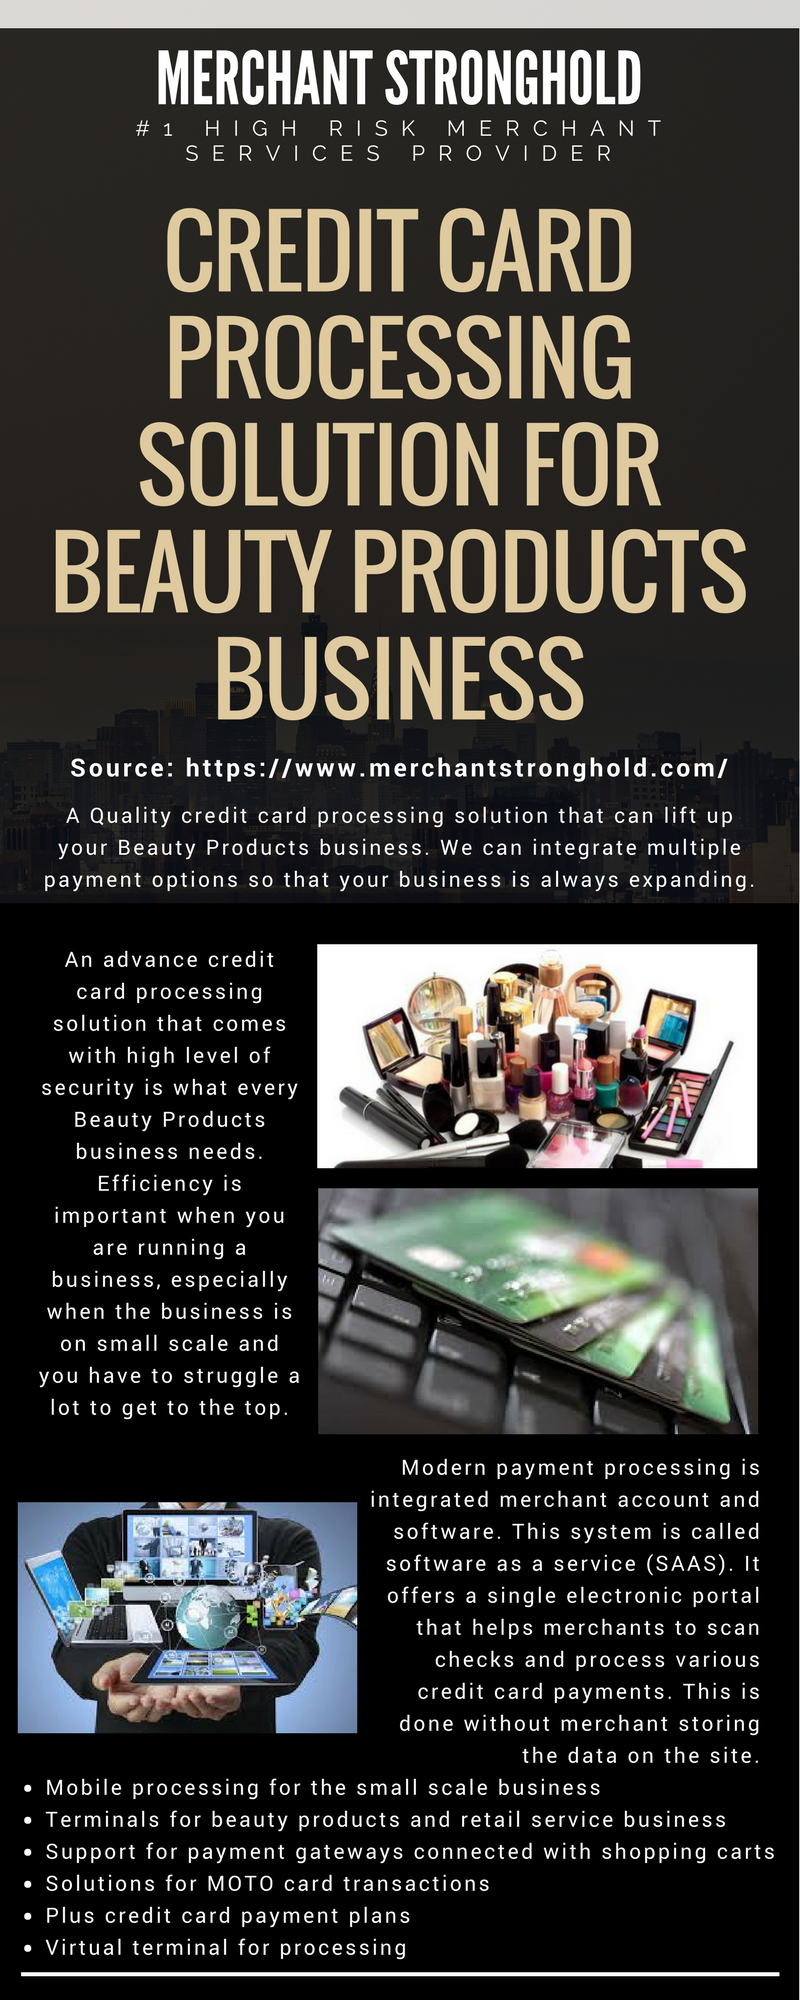 Credit card processing solution for beauty products business online high risk payment gateway and credit card processing service provider merchant stronghold which helps you accept credit card payments from all around colourmoves